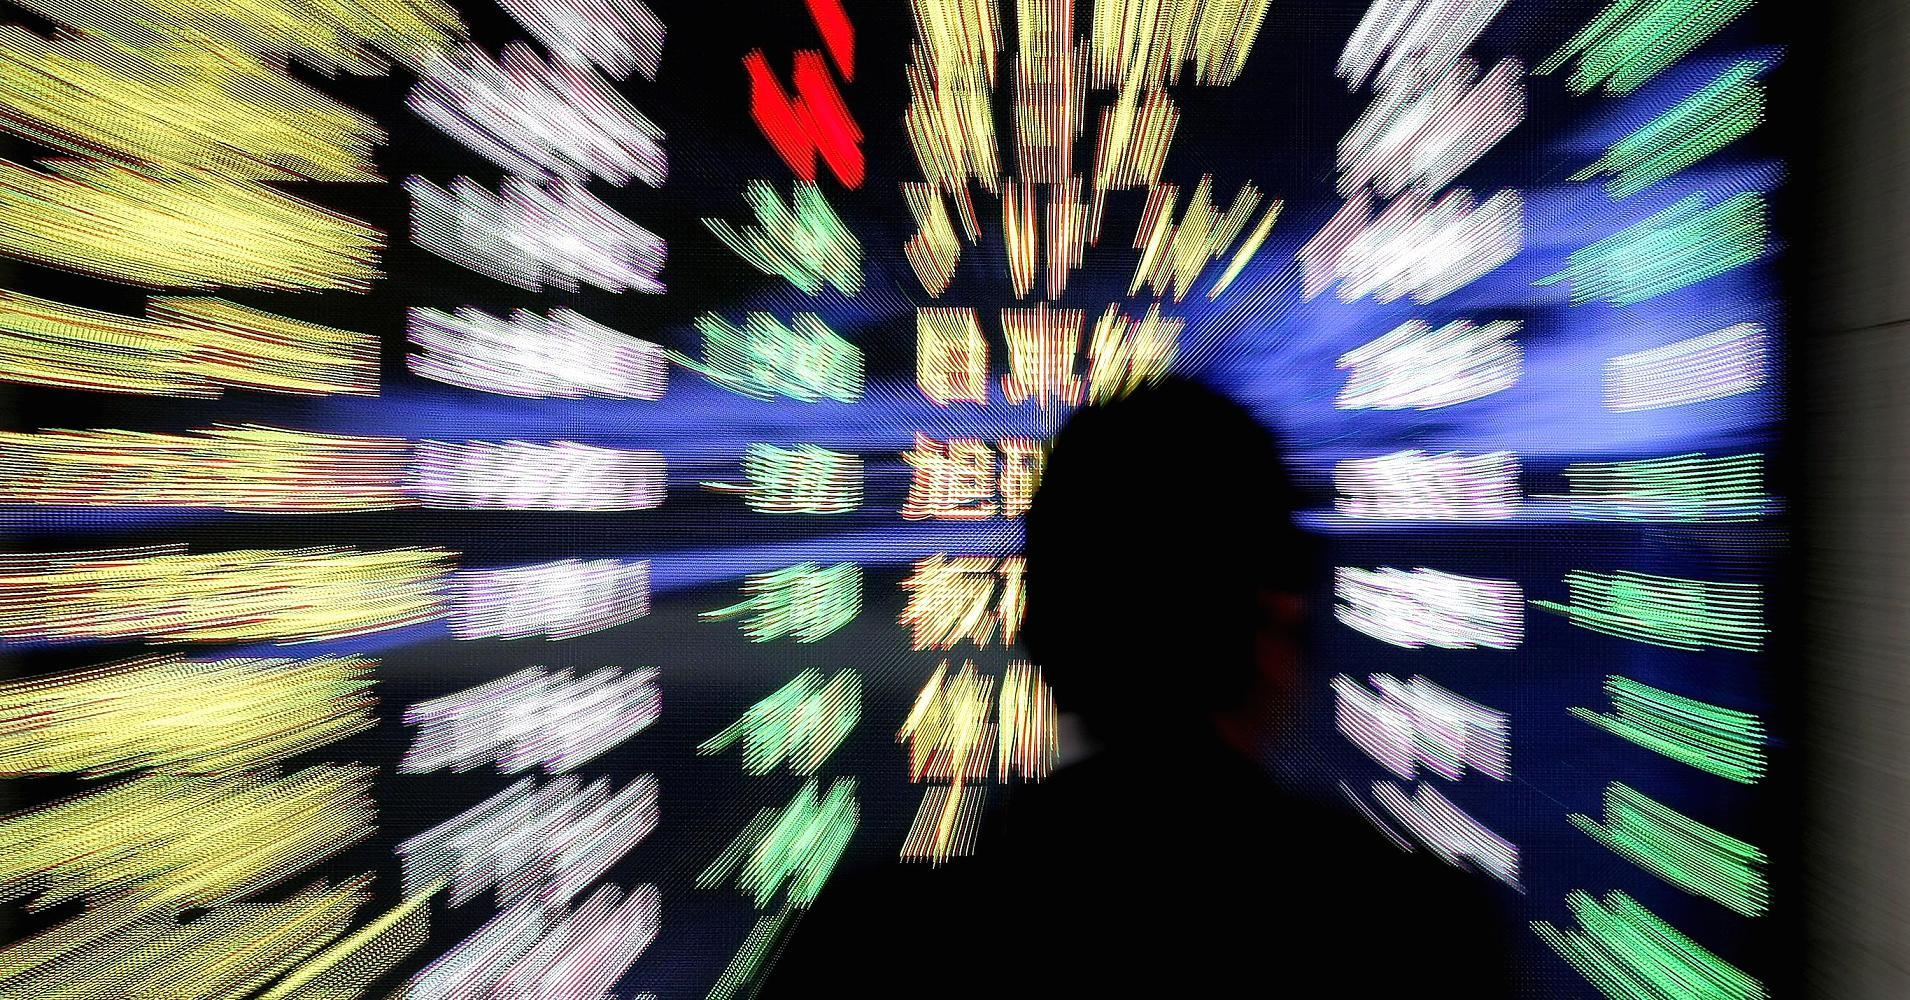 Nikkei rallies more than 2% after inflation, retail data